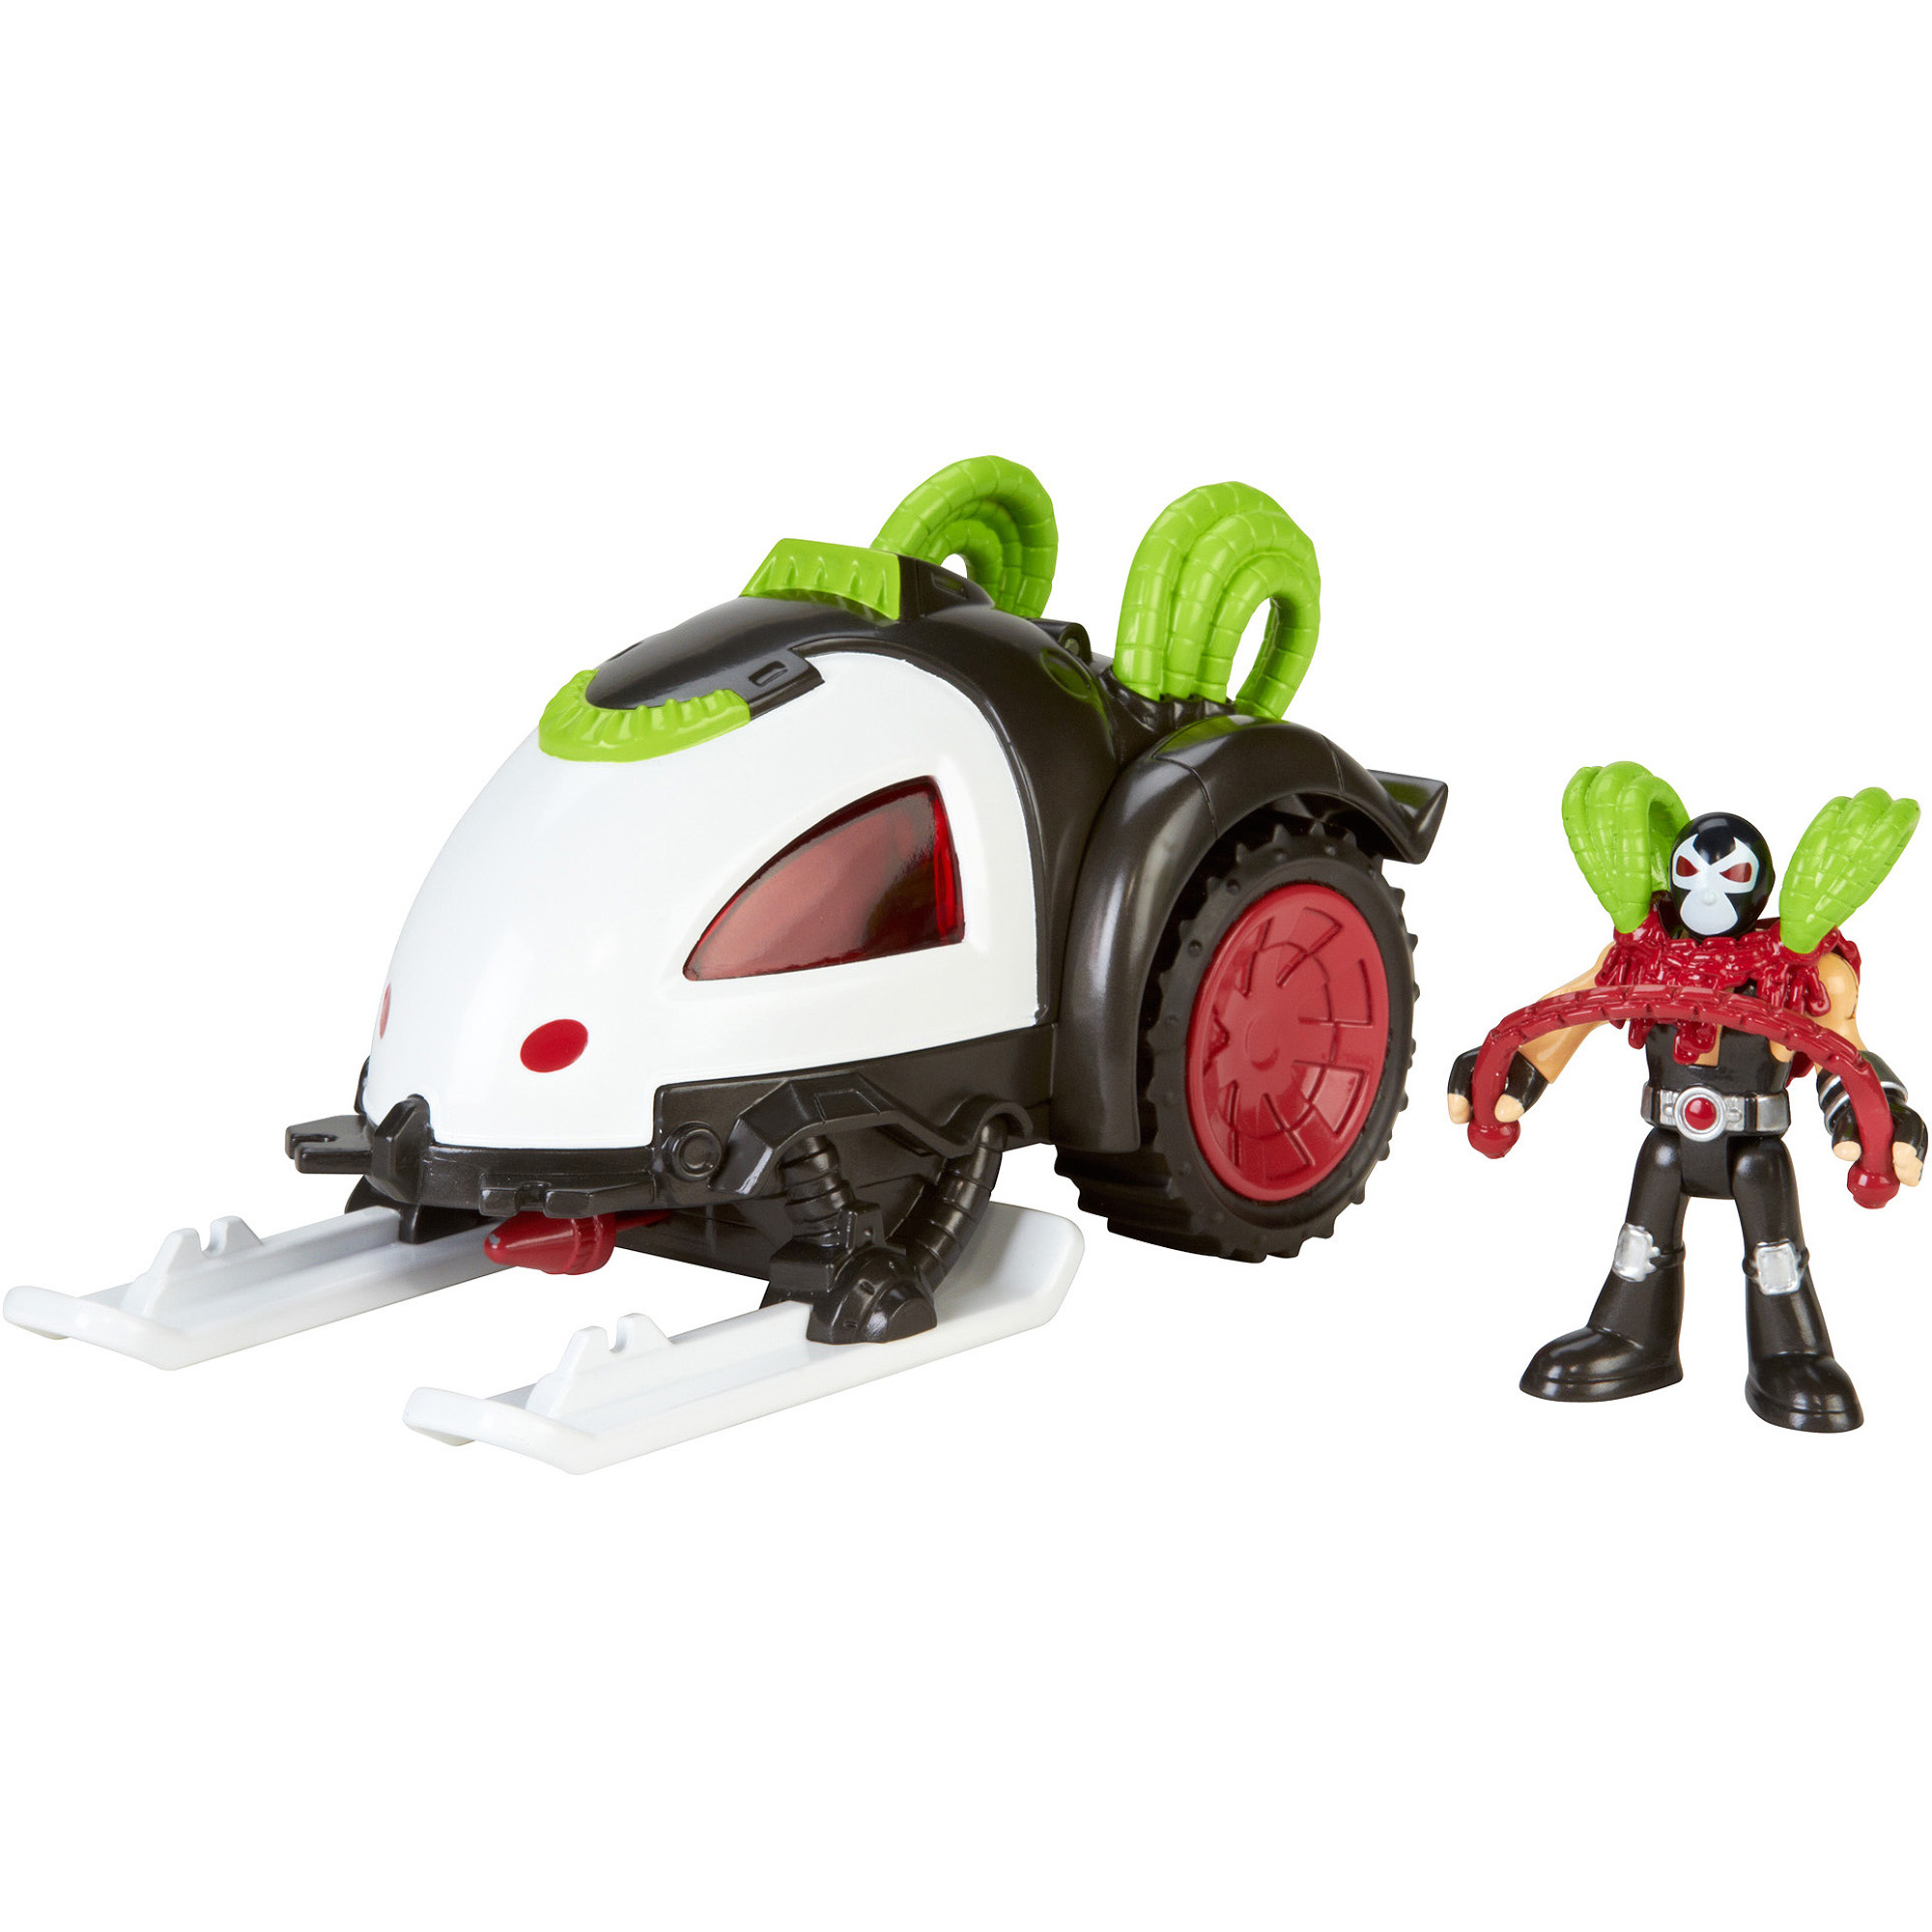 Fisher-Price Imaginext DC Super Friends Bane Battle Sled